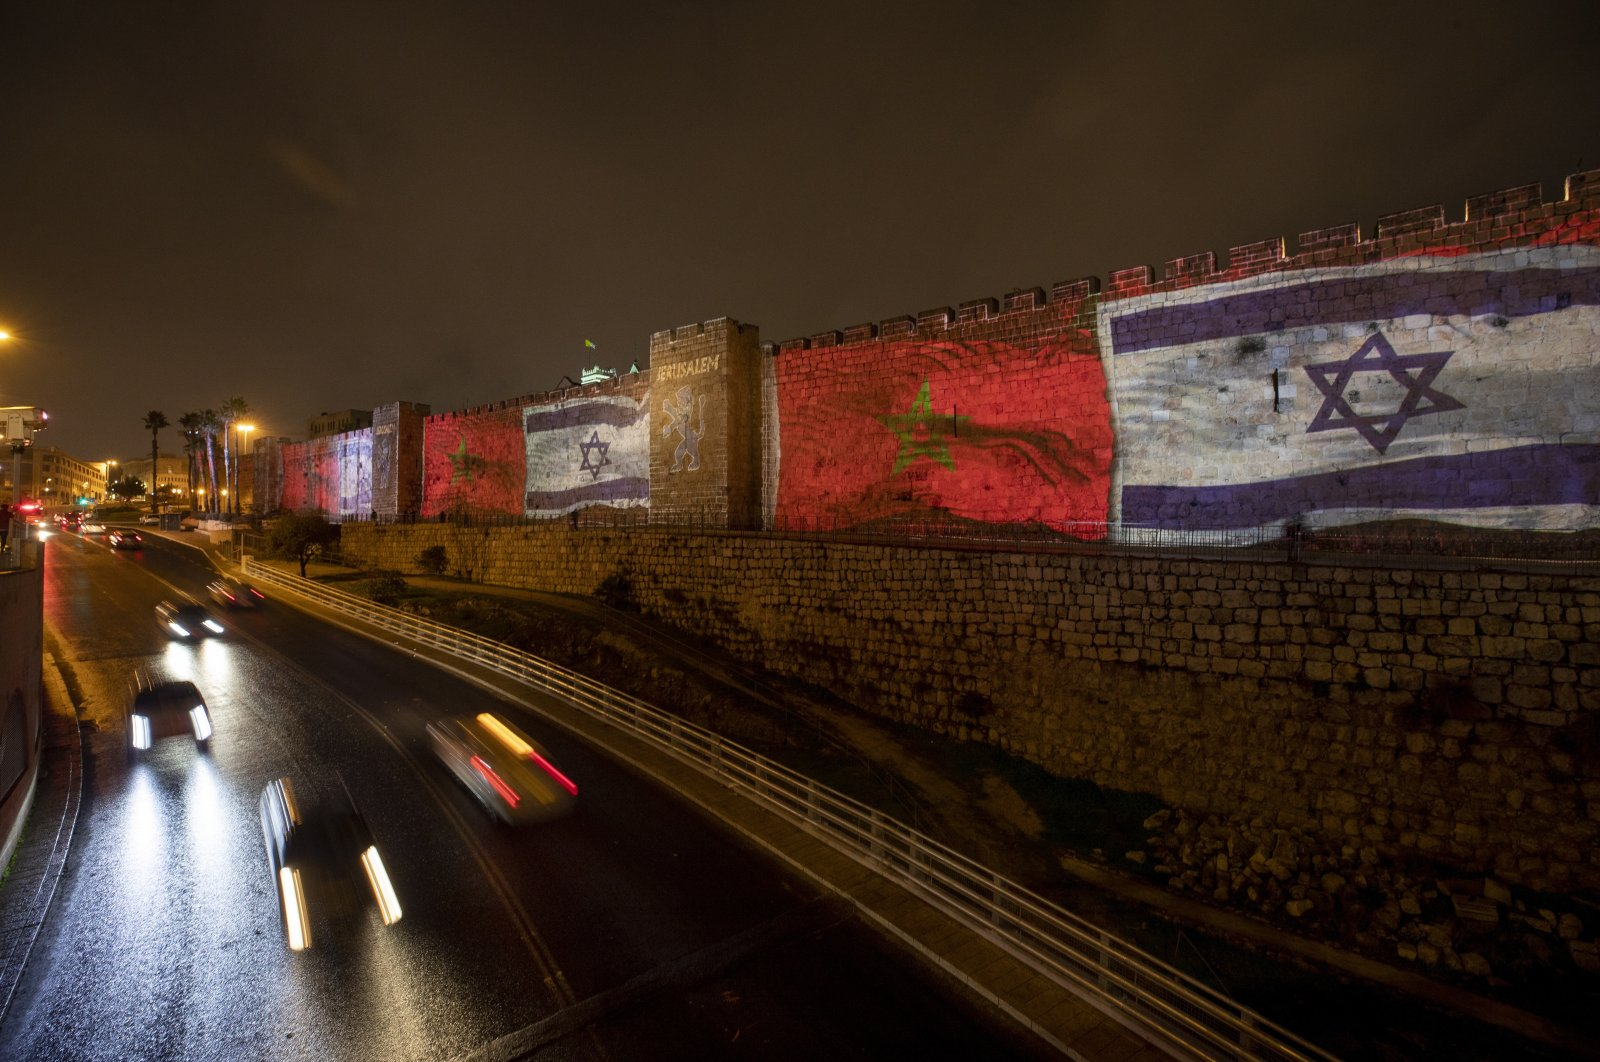 Israelis passing by the walls of Jerusalem's Old City next to Jaffa gate lit up with the Israeli and Moroccan flags as a message of peace, Jerusalem, Dec. 23, 2020. (EPA Photo)